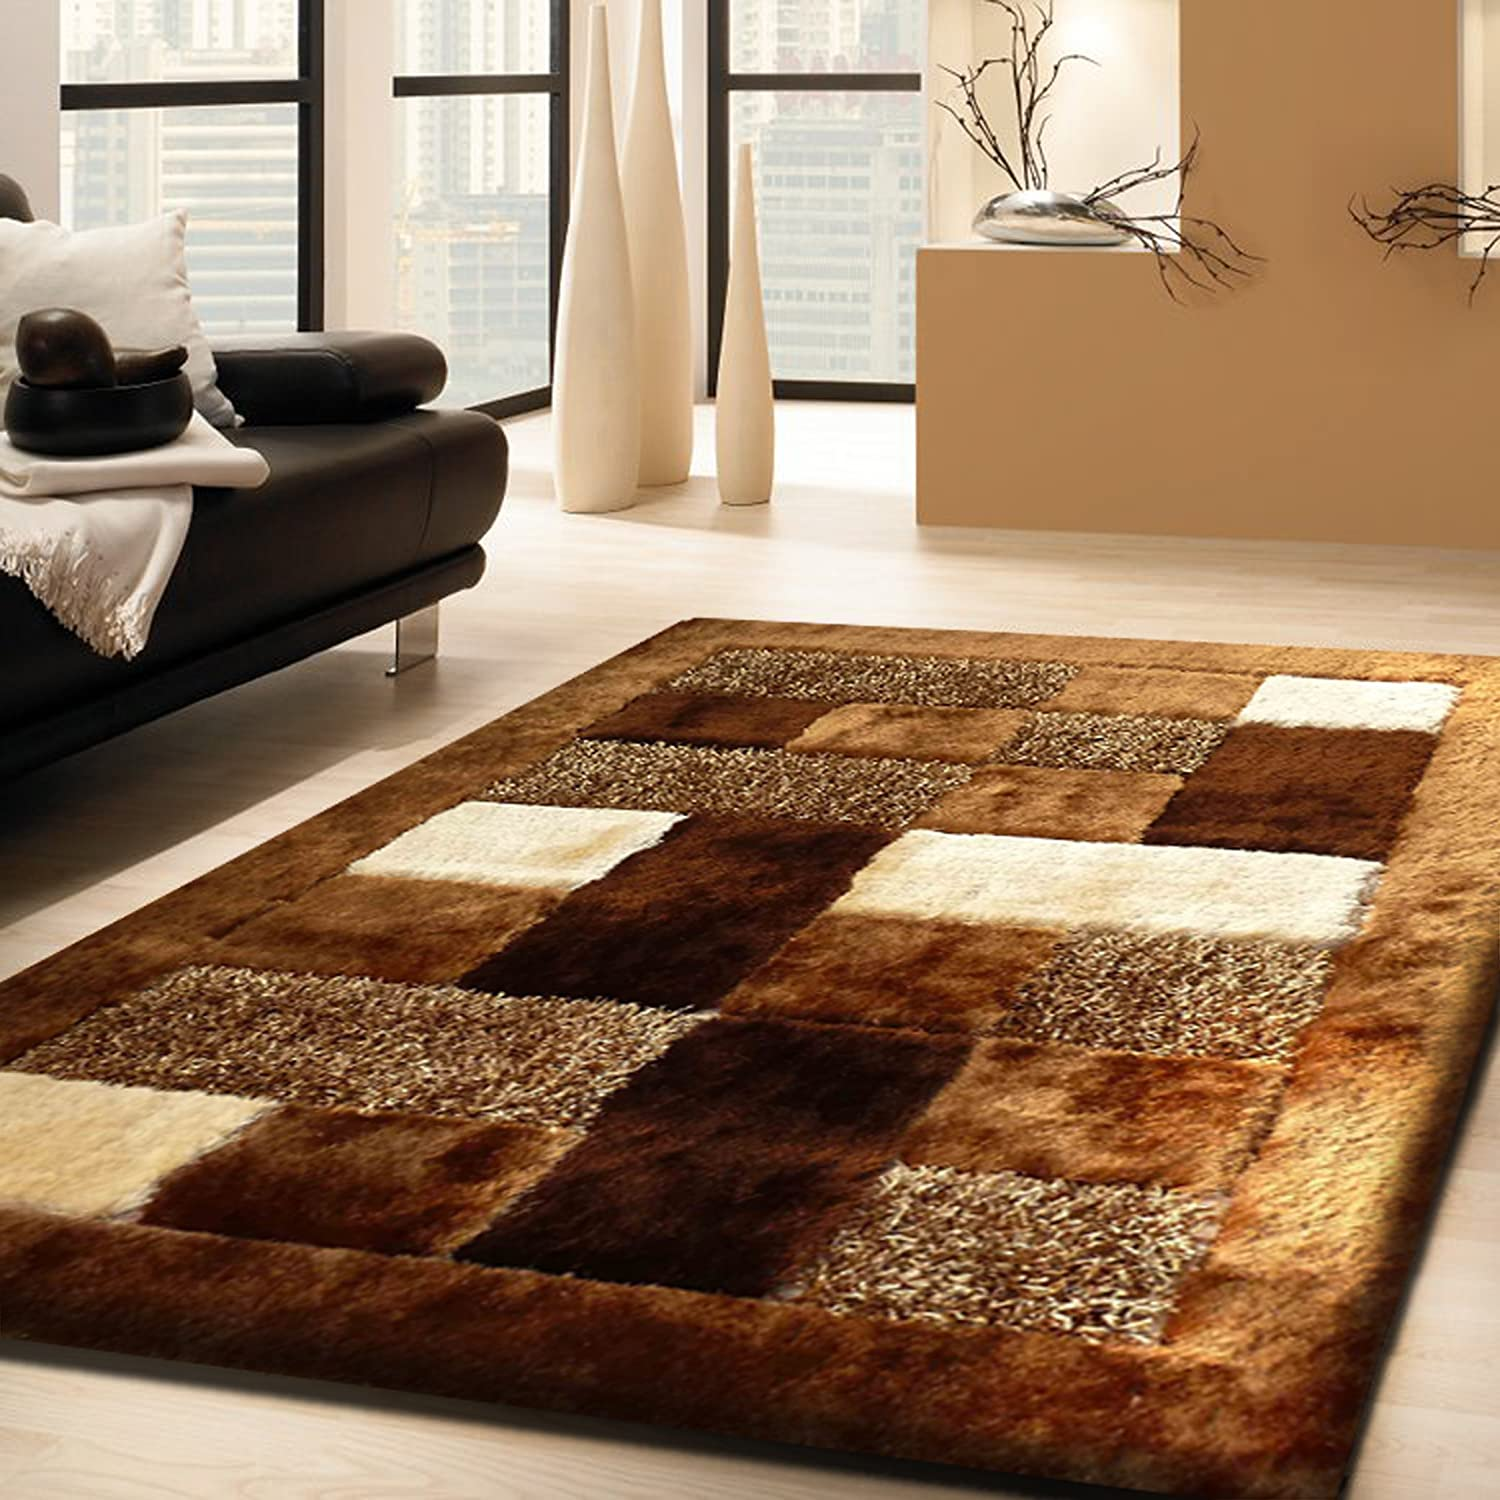 Amazon.com: Admirable Shaggy Viscose #30 Brown Living Room Area ...